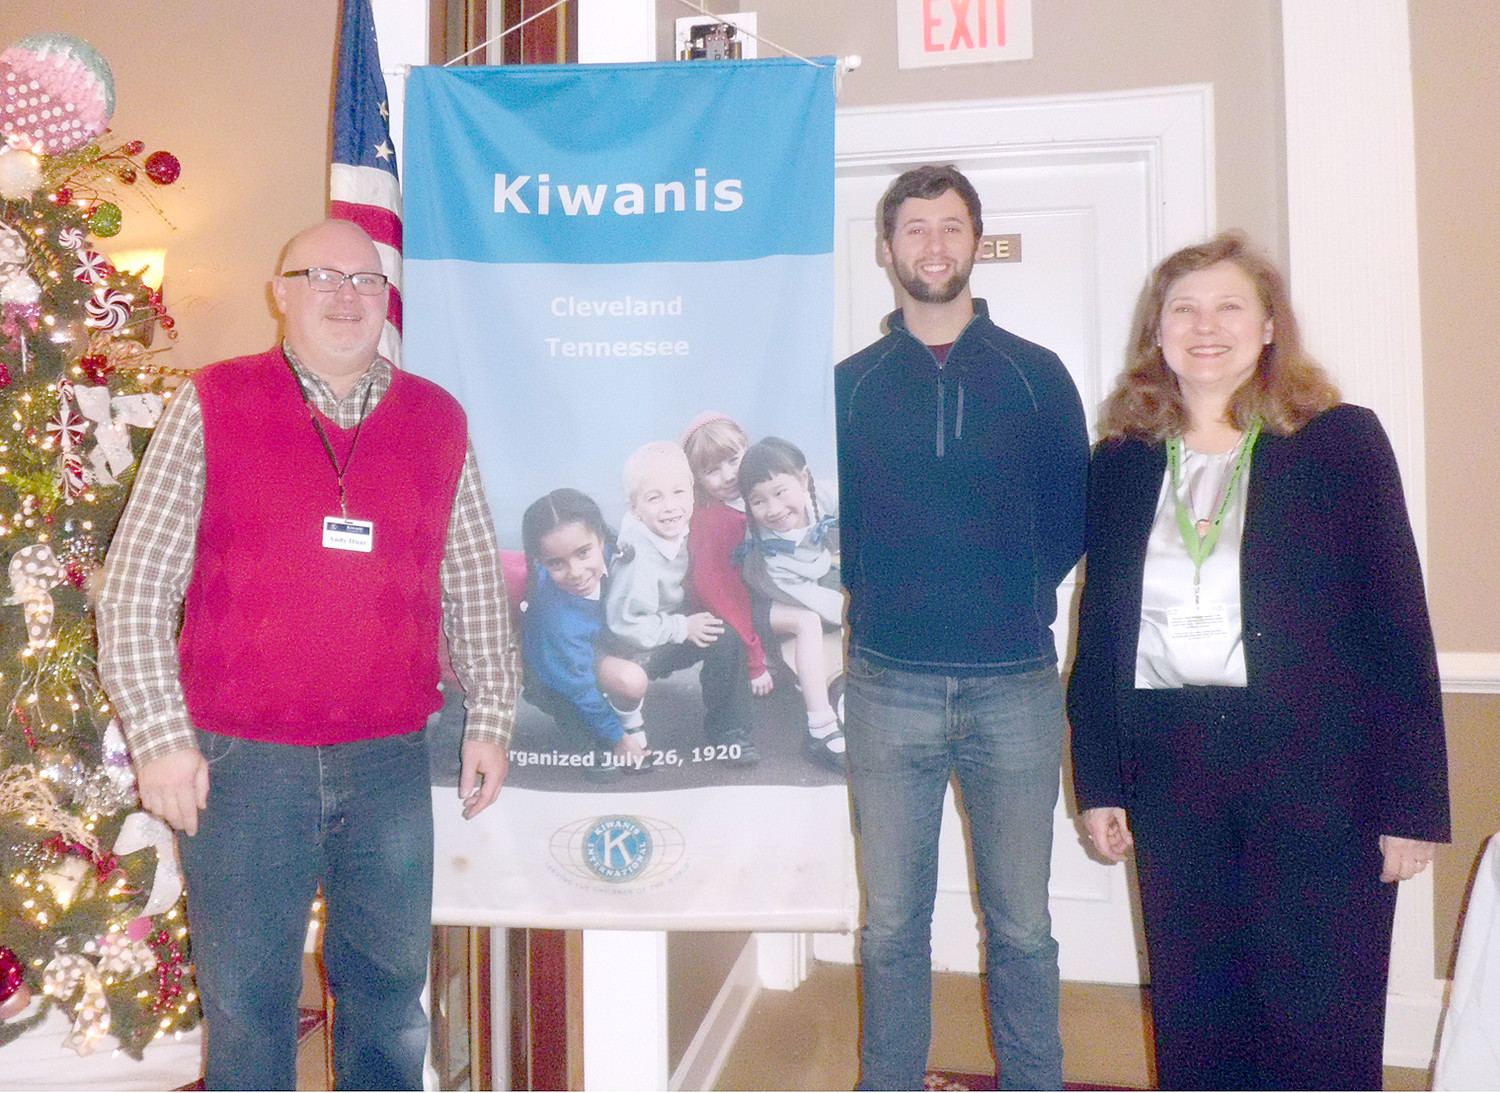 "On Thursday, Kiwanis Club of Cleveland members enjoyed the special holiday presentation of ""Why The 'Dickens' Do We Celebrate Christmas This Way?"" by speaker Ann Dietrich, Cleveland Bradley County Public Library Reader's adviser, at the weekly meeting at the Elks Club in downtown Cleveland. From left are Andy Hunt, Kiwanis December program chair; Mike Stoess, Kiwanis Club of Cleveland president; and Dietrich. The Kiwanis Club of Cleveland members recently provided coats and other clothing items to 94 Head Start students at the Blythe Avenue Head Start classes, as a part of their dedication as volunteers who are dedicated to changing the world, one child and one community at a time."